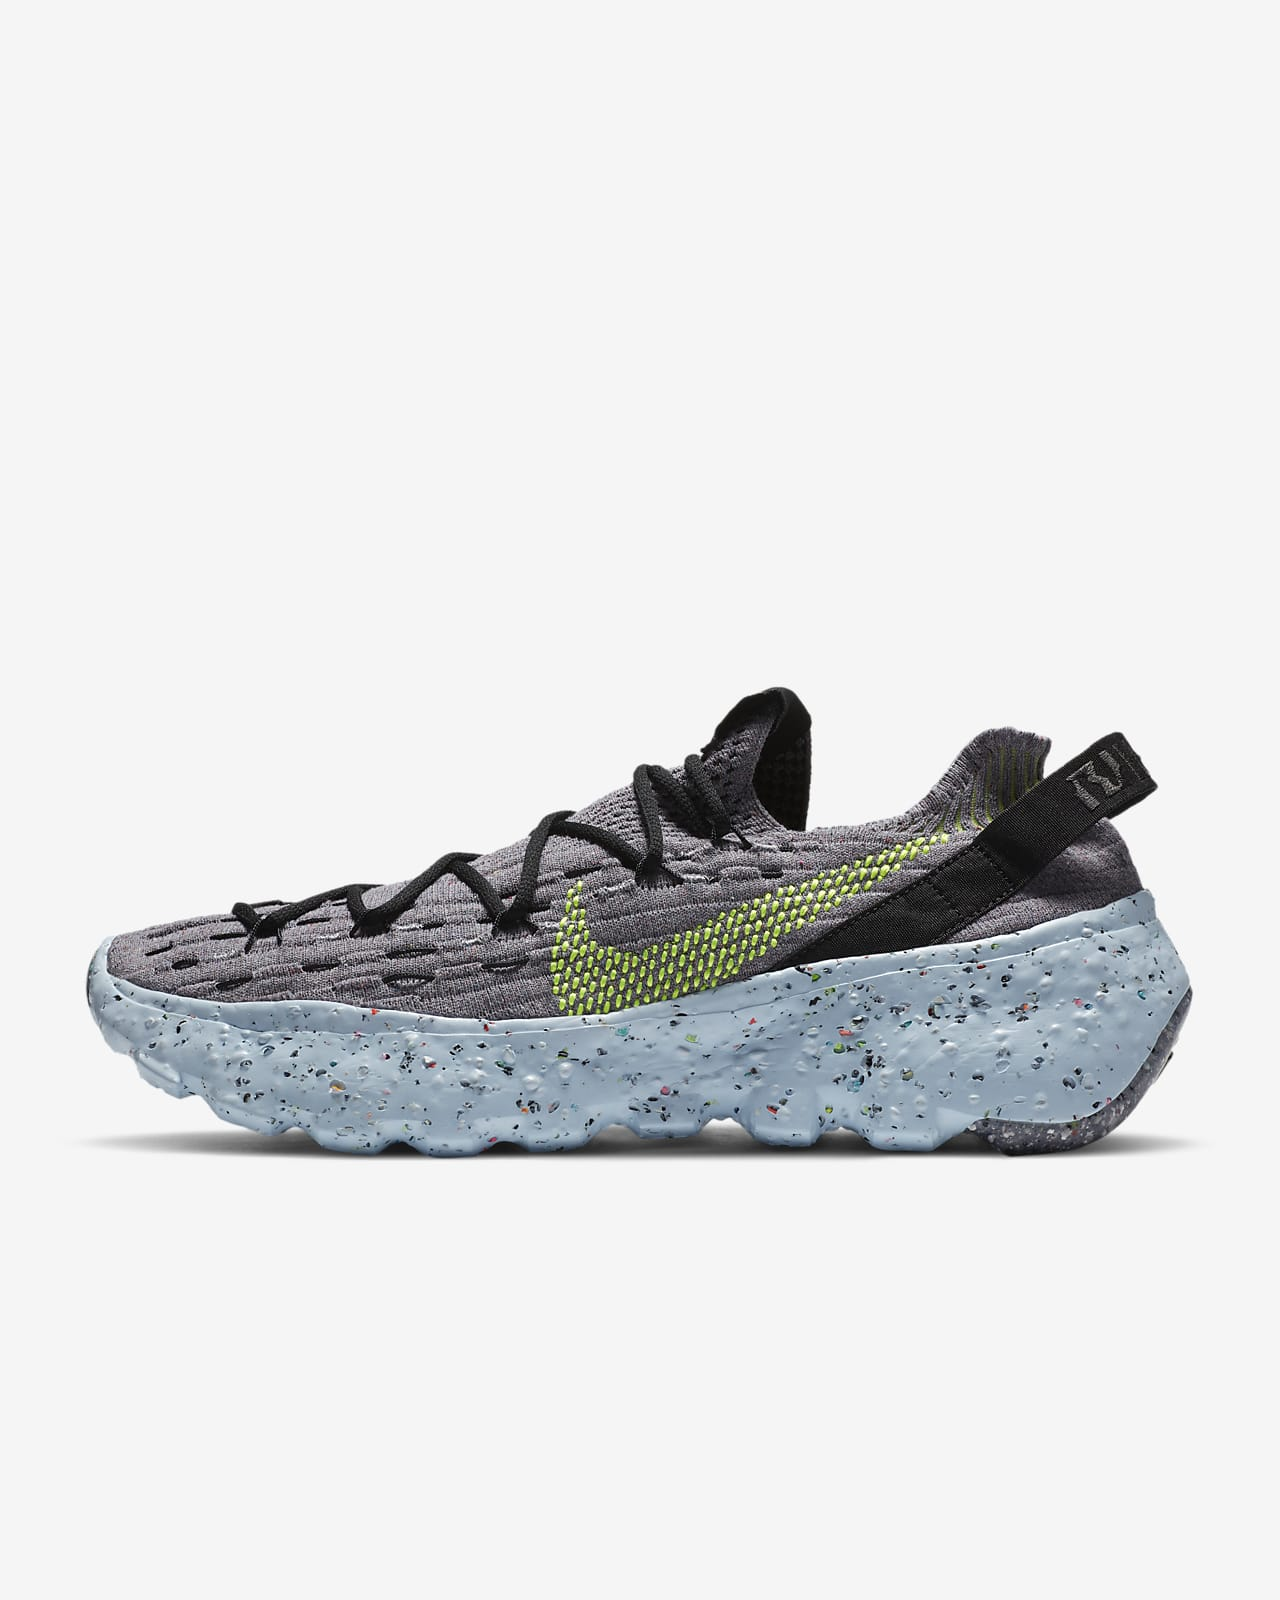 Nike Space Hippie 04 Herrenschuh